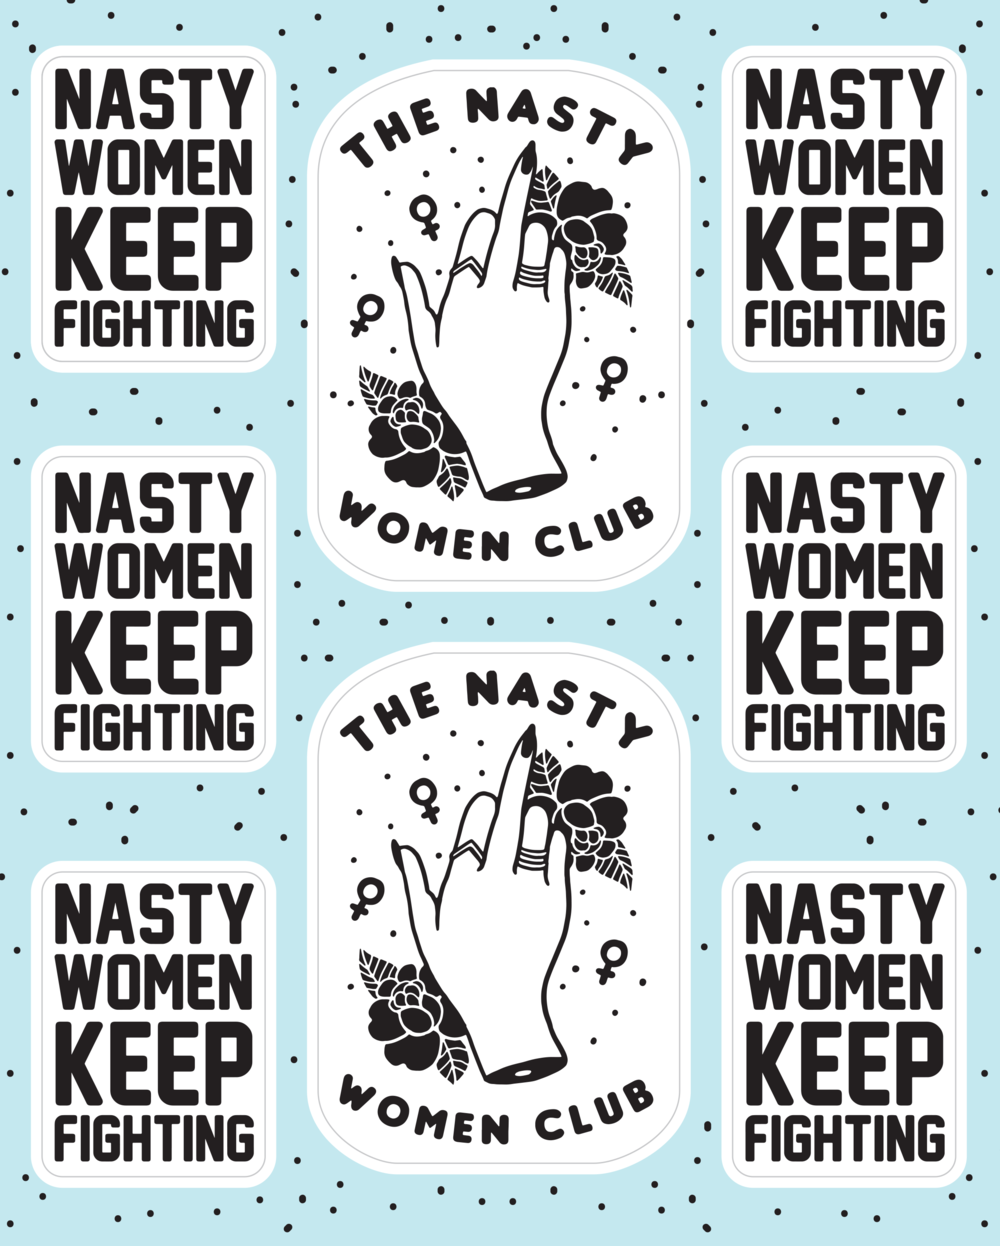 nasty-women-stickers.png